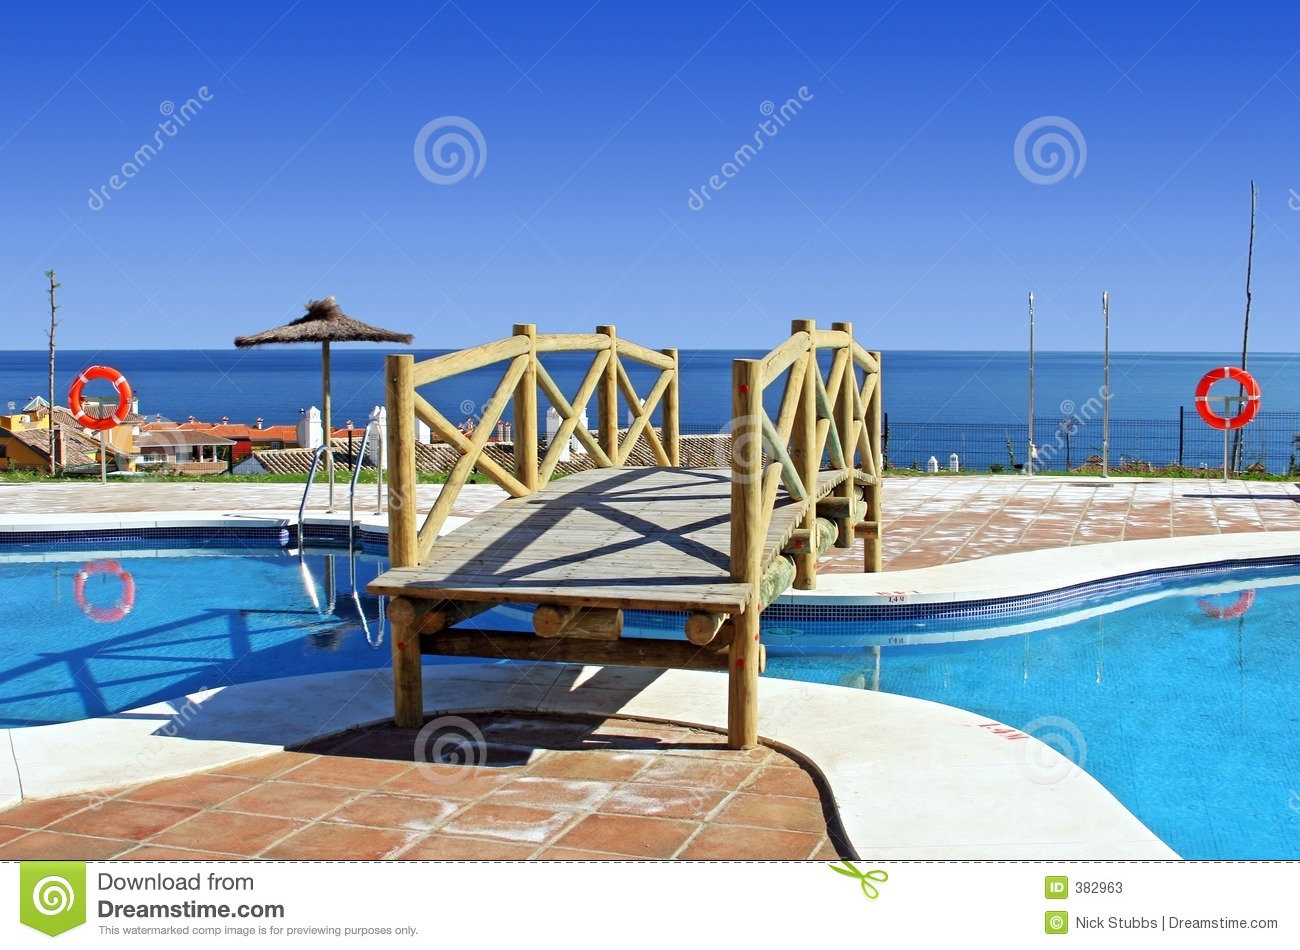 Wooden Bridge Over Swimming Pool In Spanish Urbanisation Stock Photos Image 382963